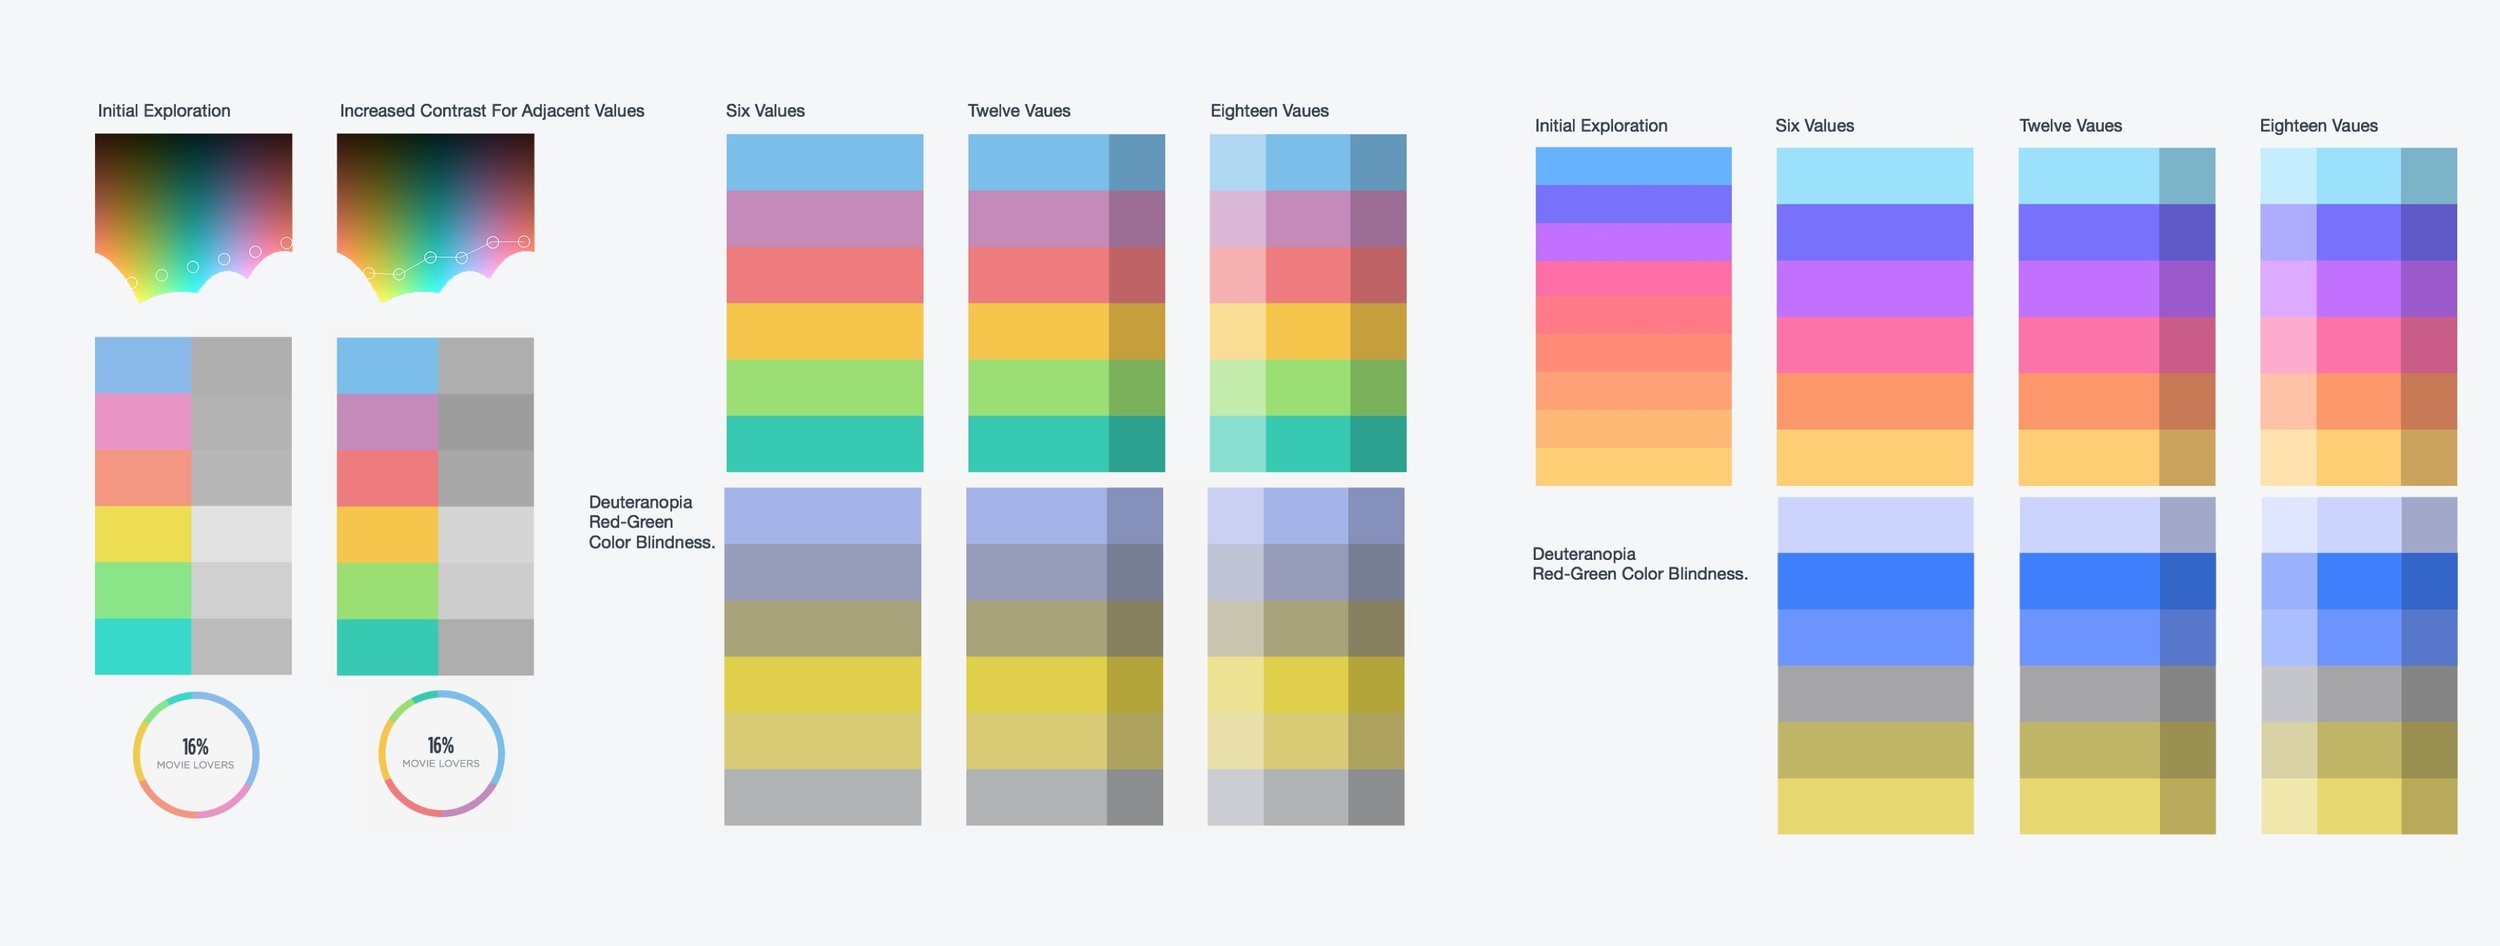 Designers created an accessible color palette for charts and visualizations. The work being done had to consider being readable by the wide range of users including those who are color blind. To reach a high accessibility standard, designers combined scientific research and visual aesthetics to create an effective color palette for data visualization.